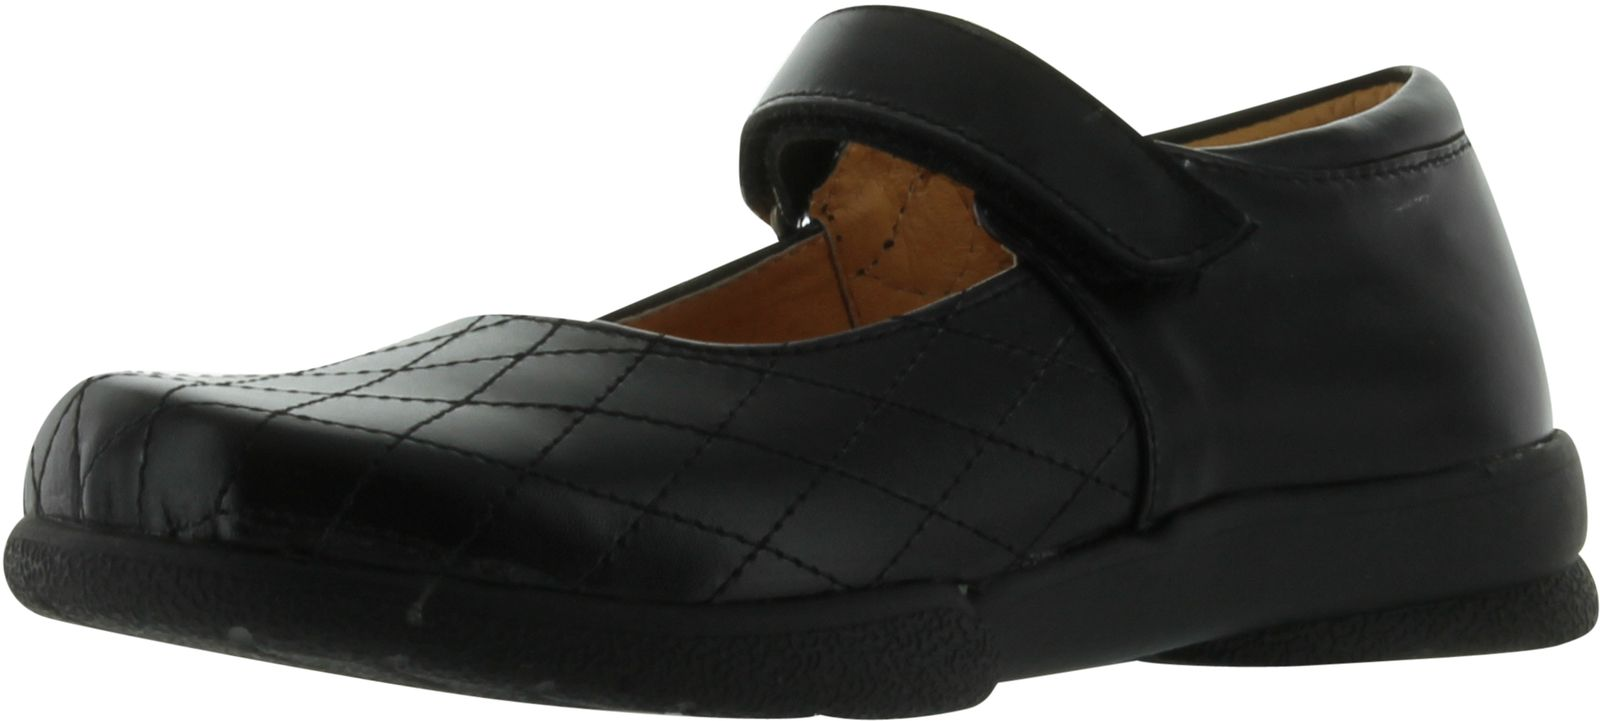 quilted design school shoes ebay